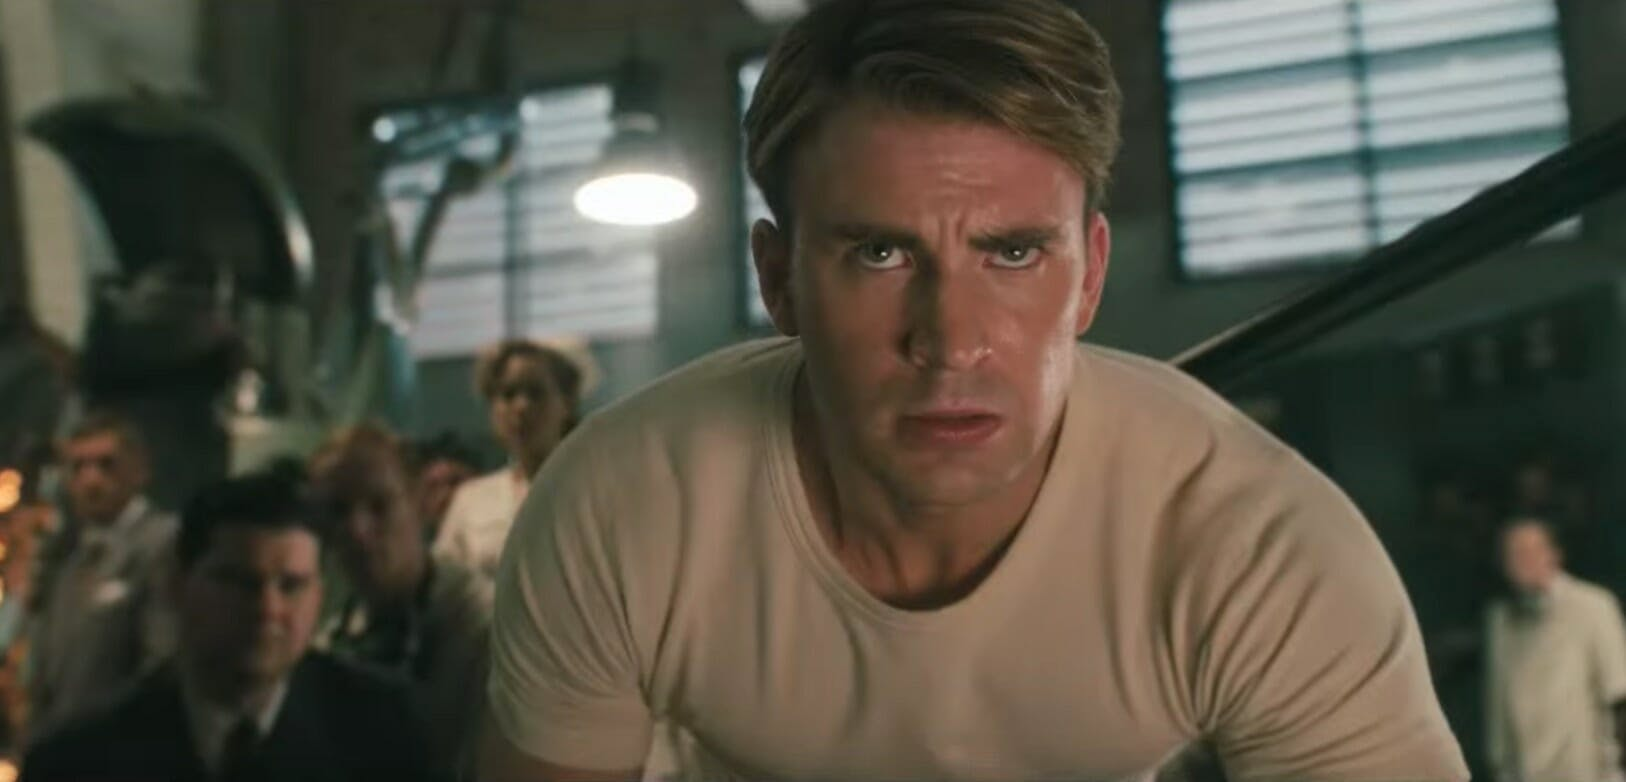 mcu phase 1 - captain america: first avenger